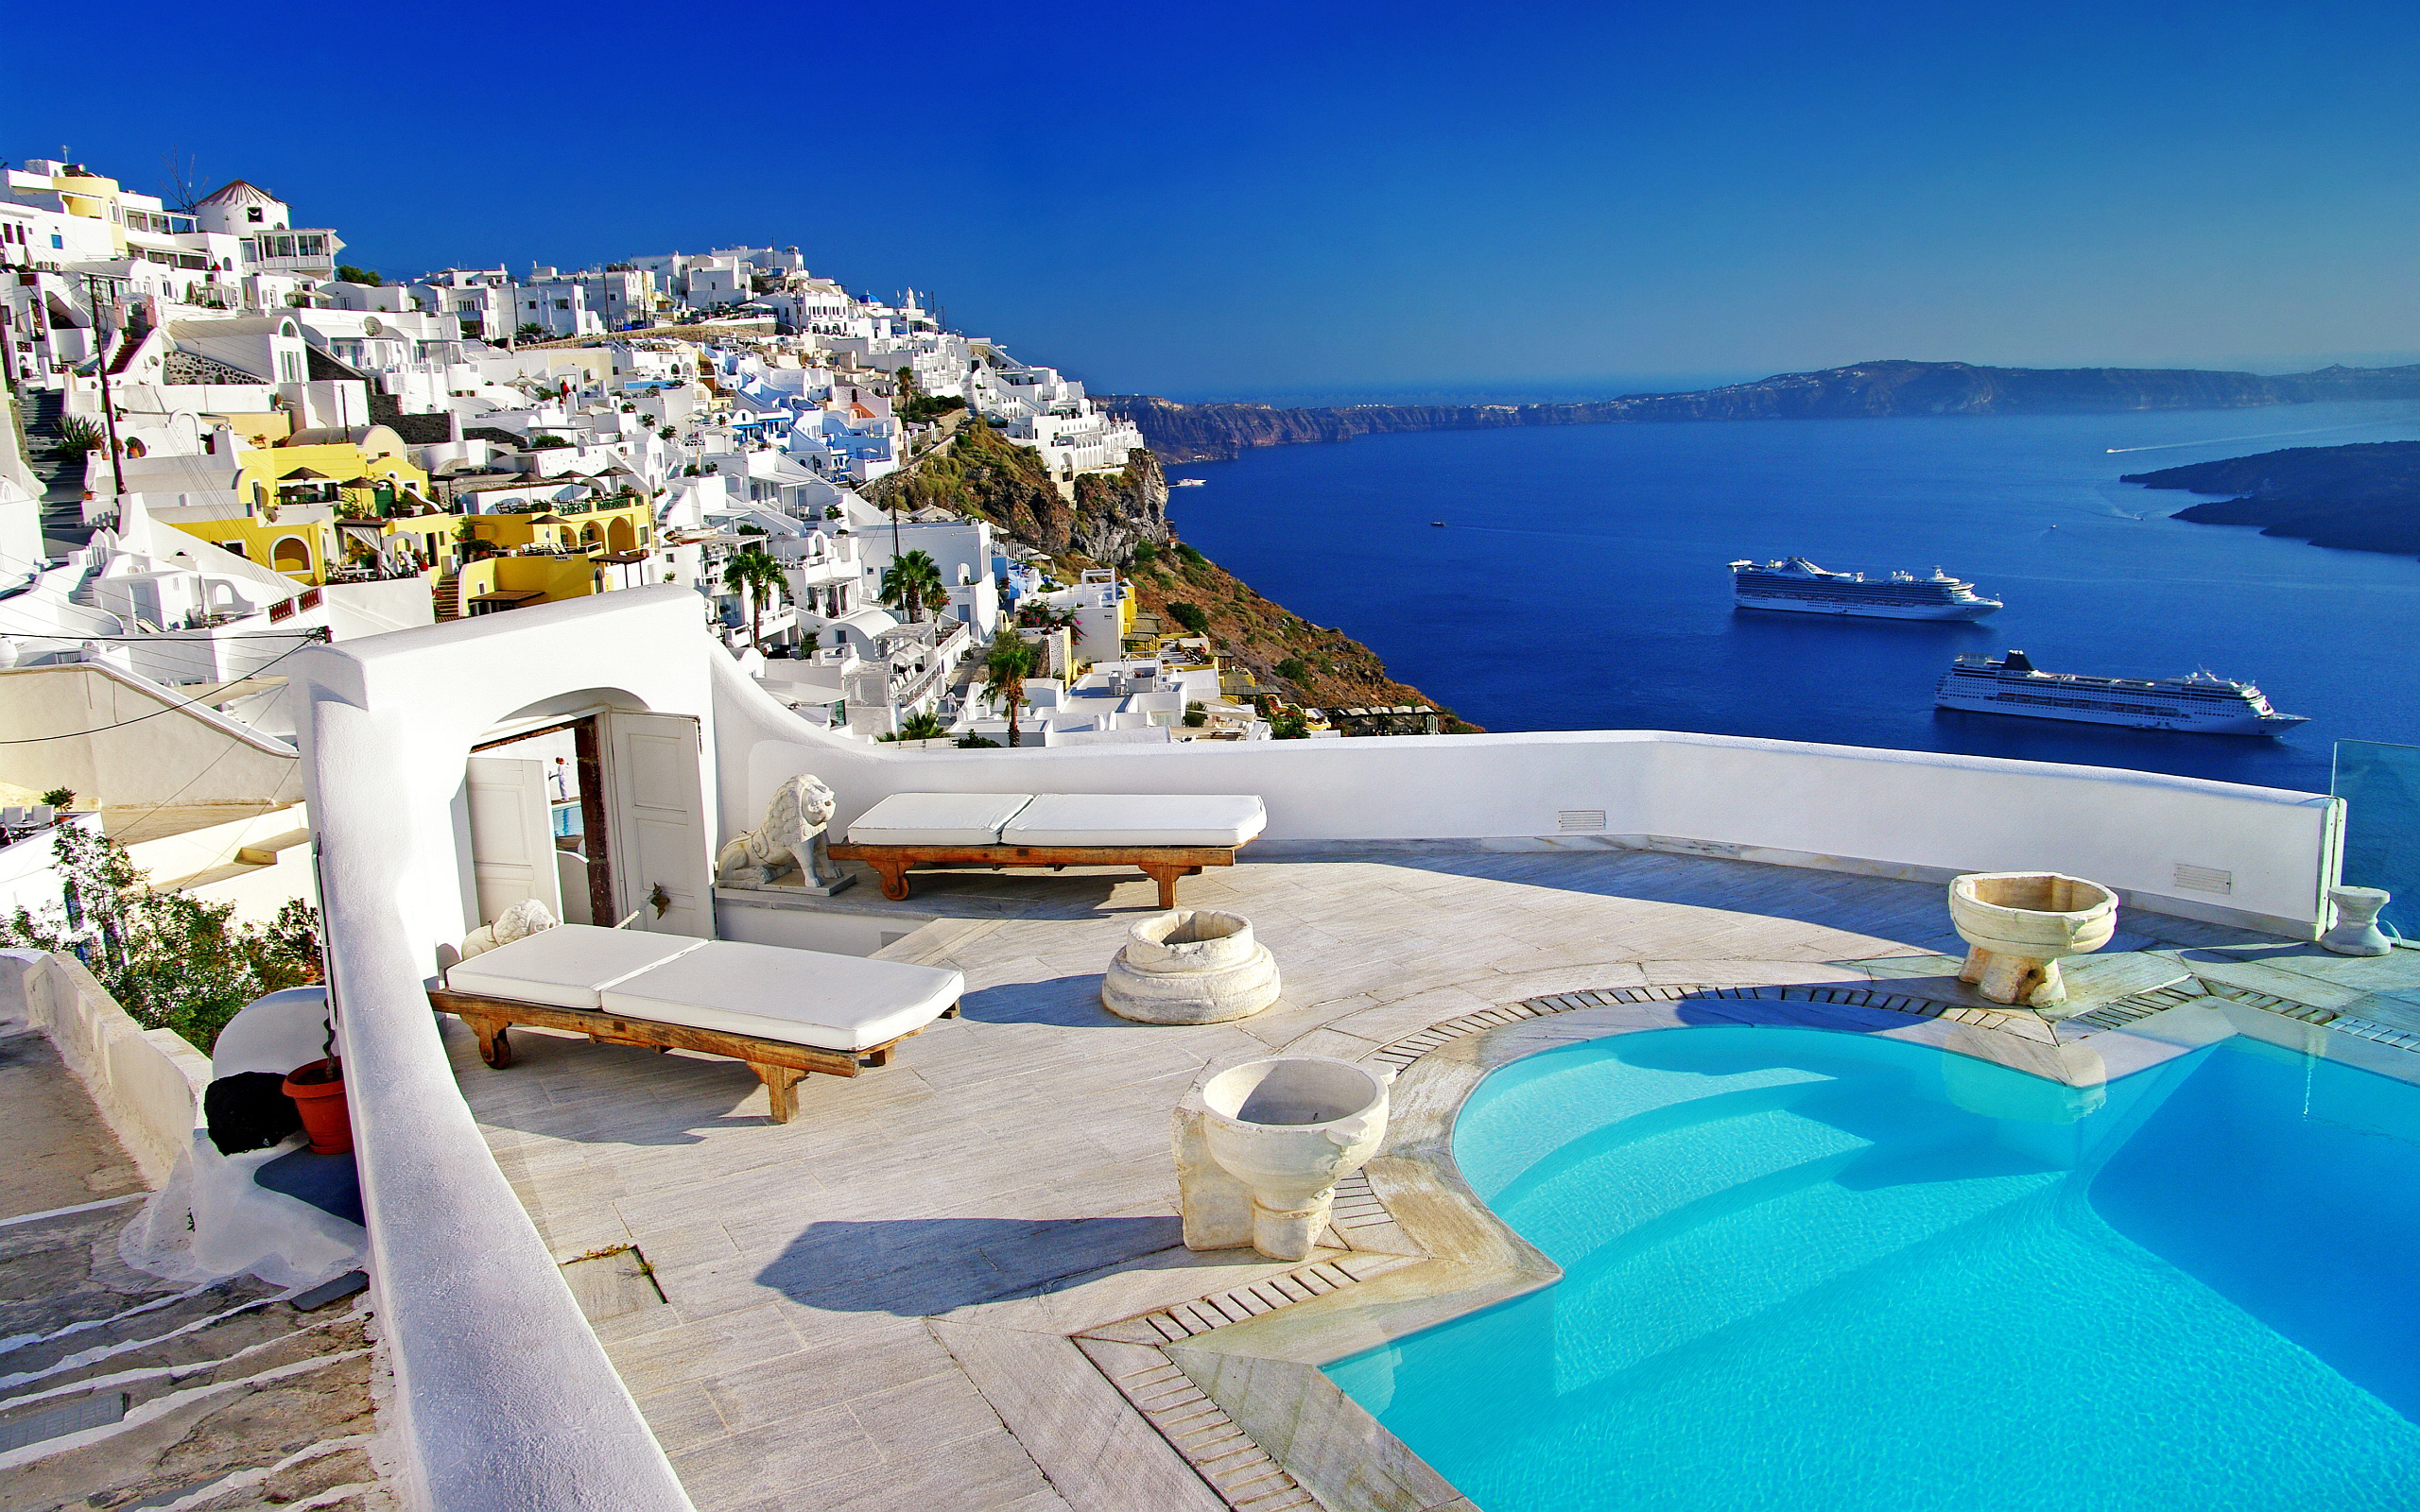 Santorini-Greece-8